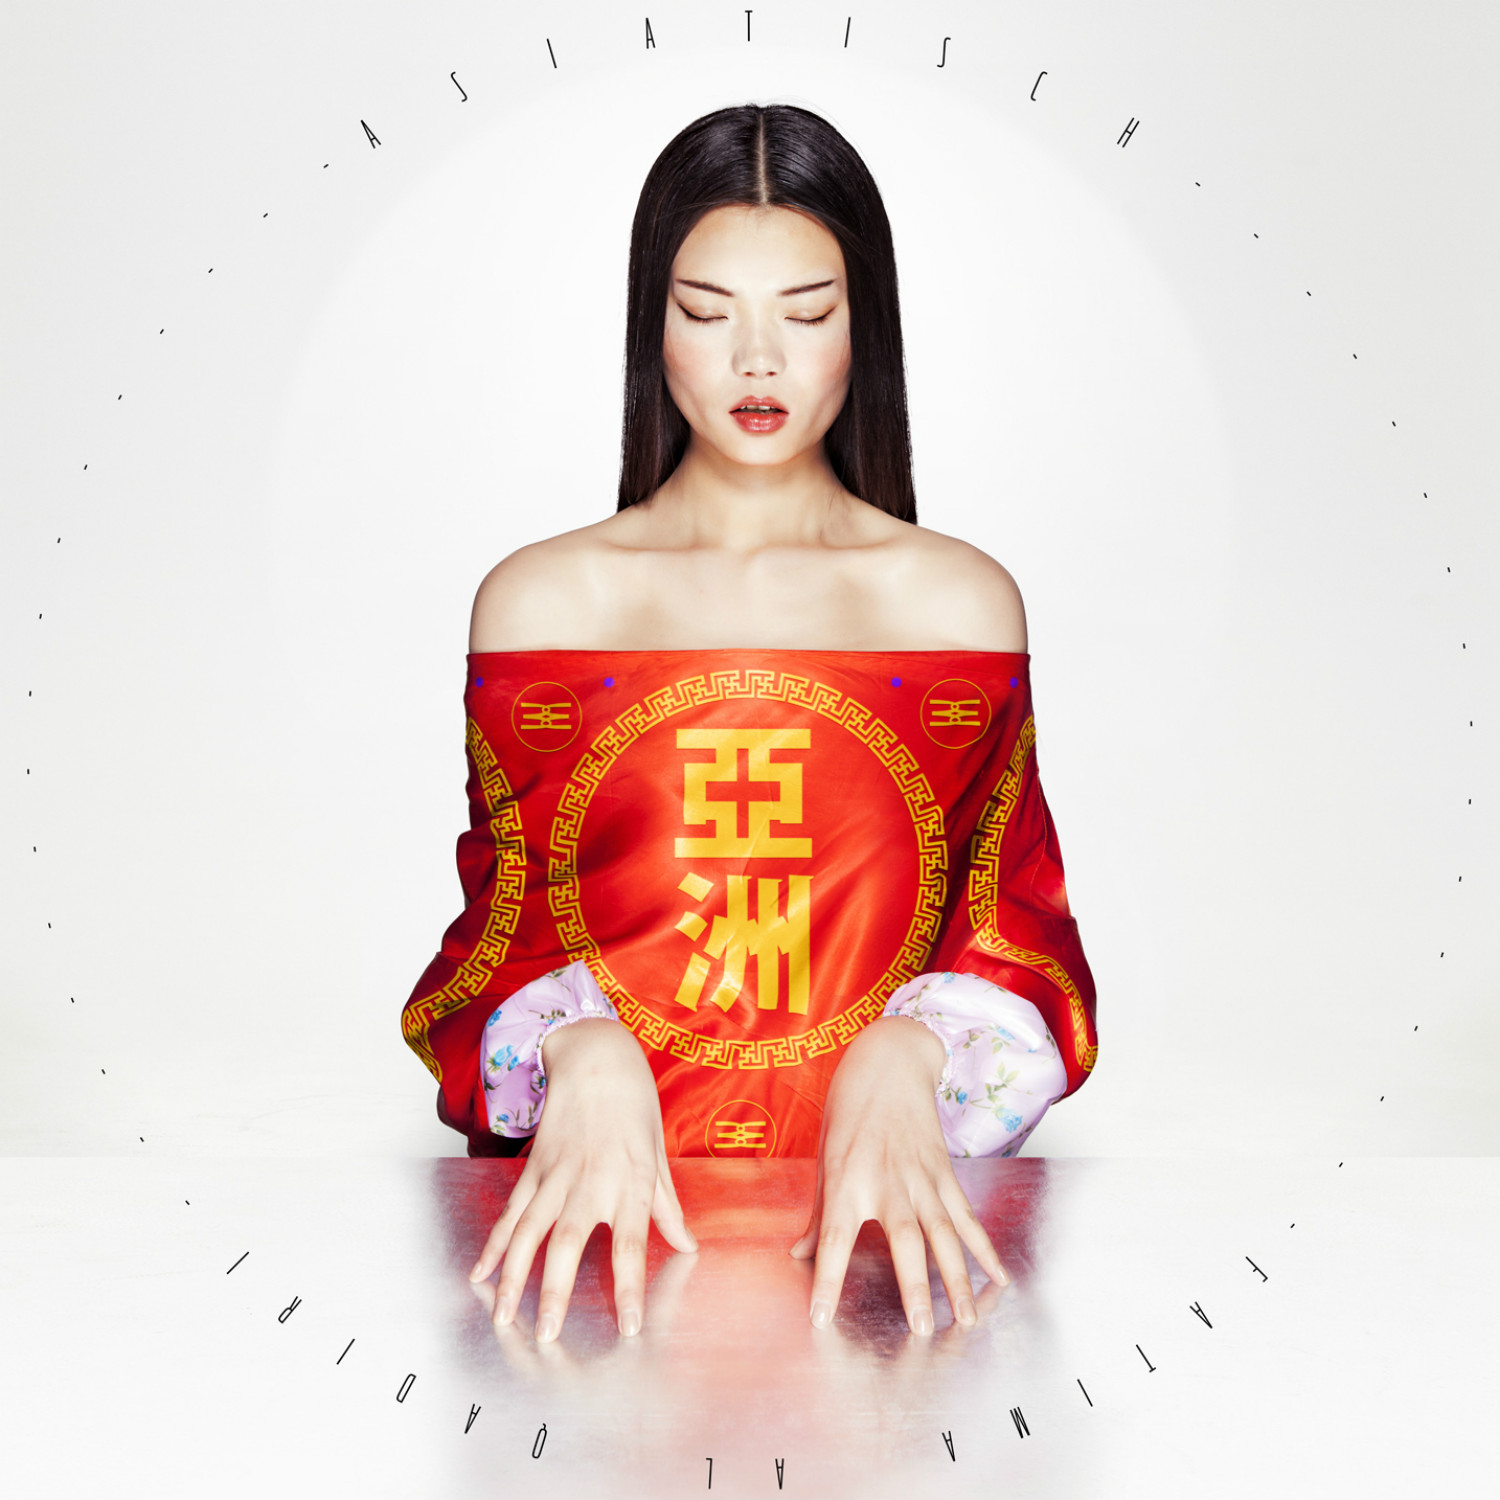 album covers 2014 Fatima Al Qadiri asiatech